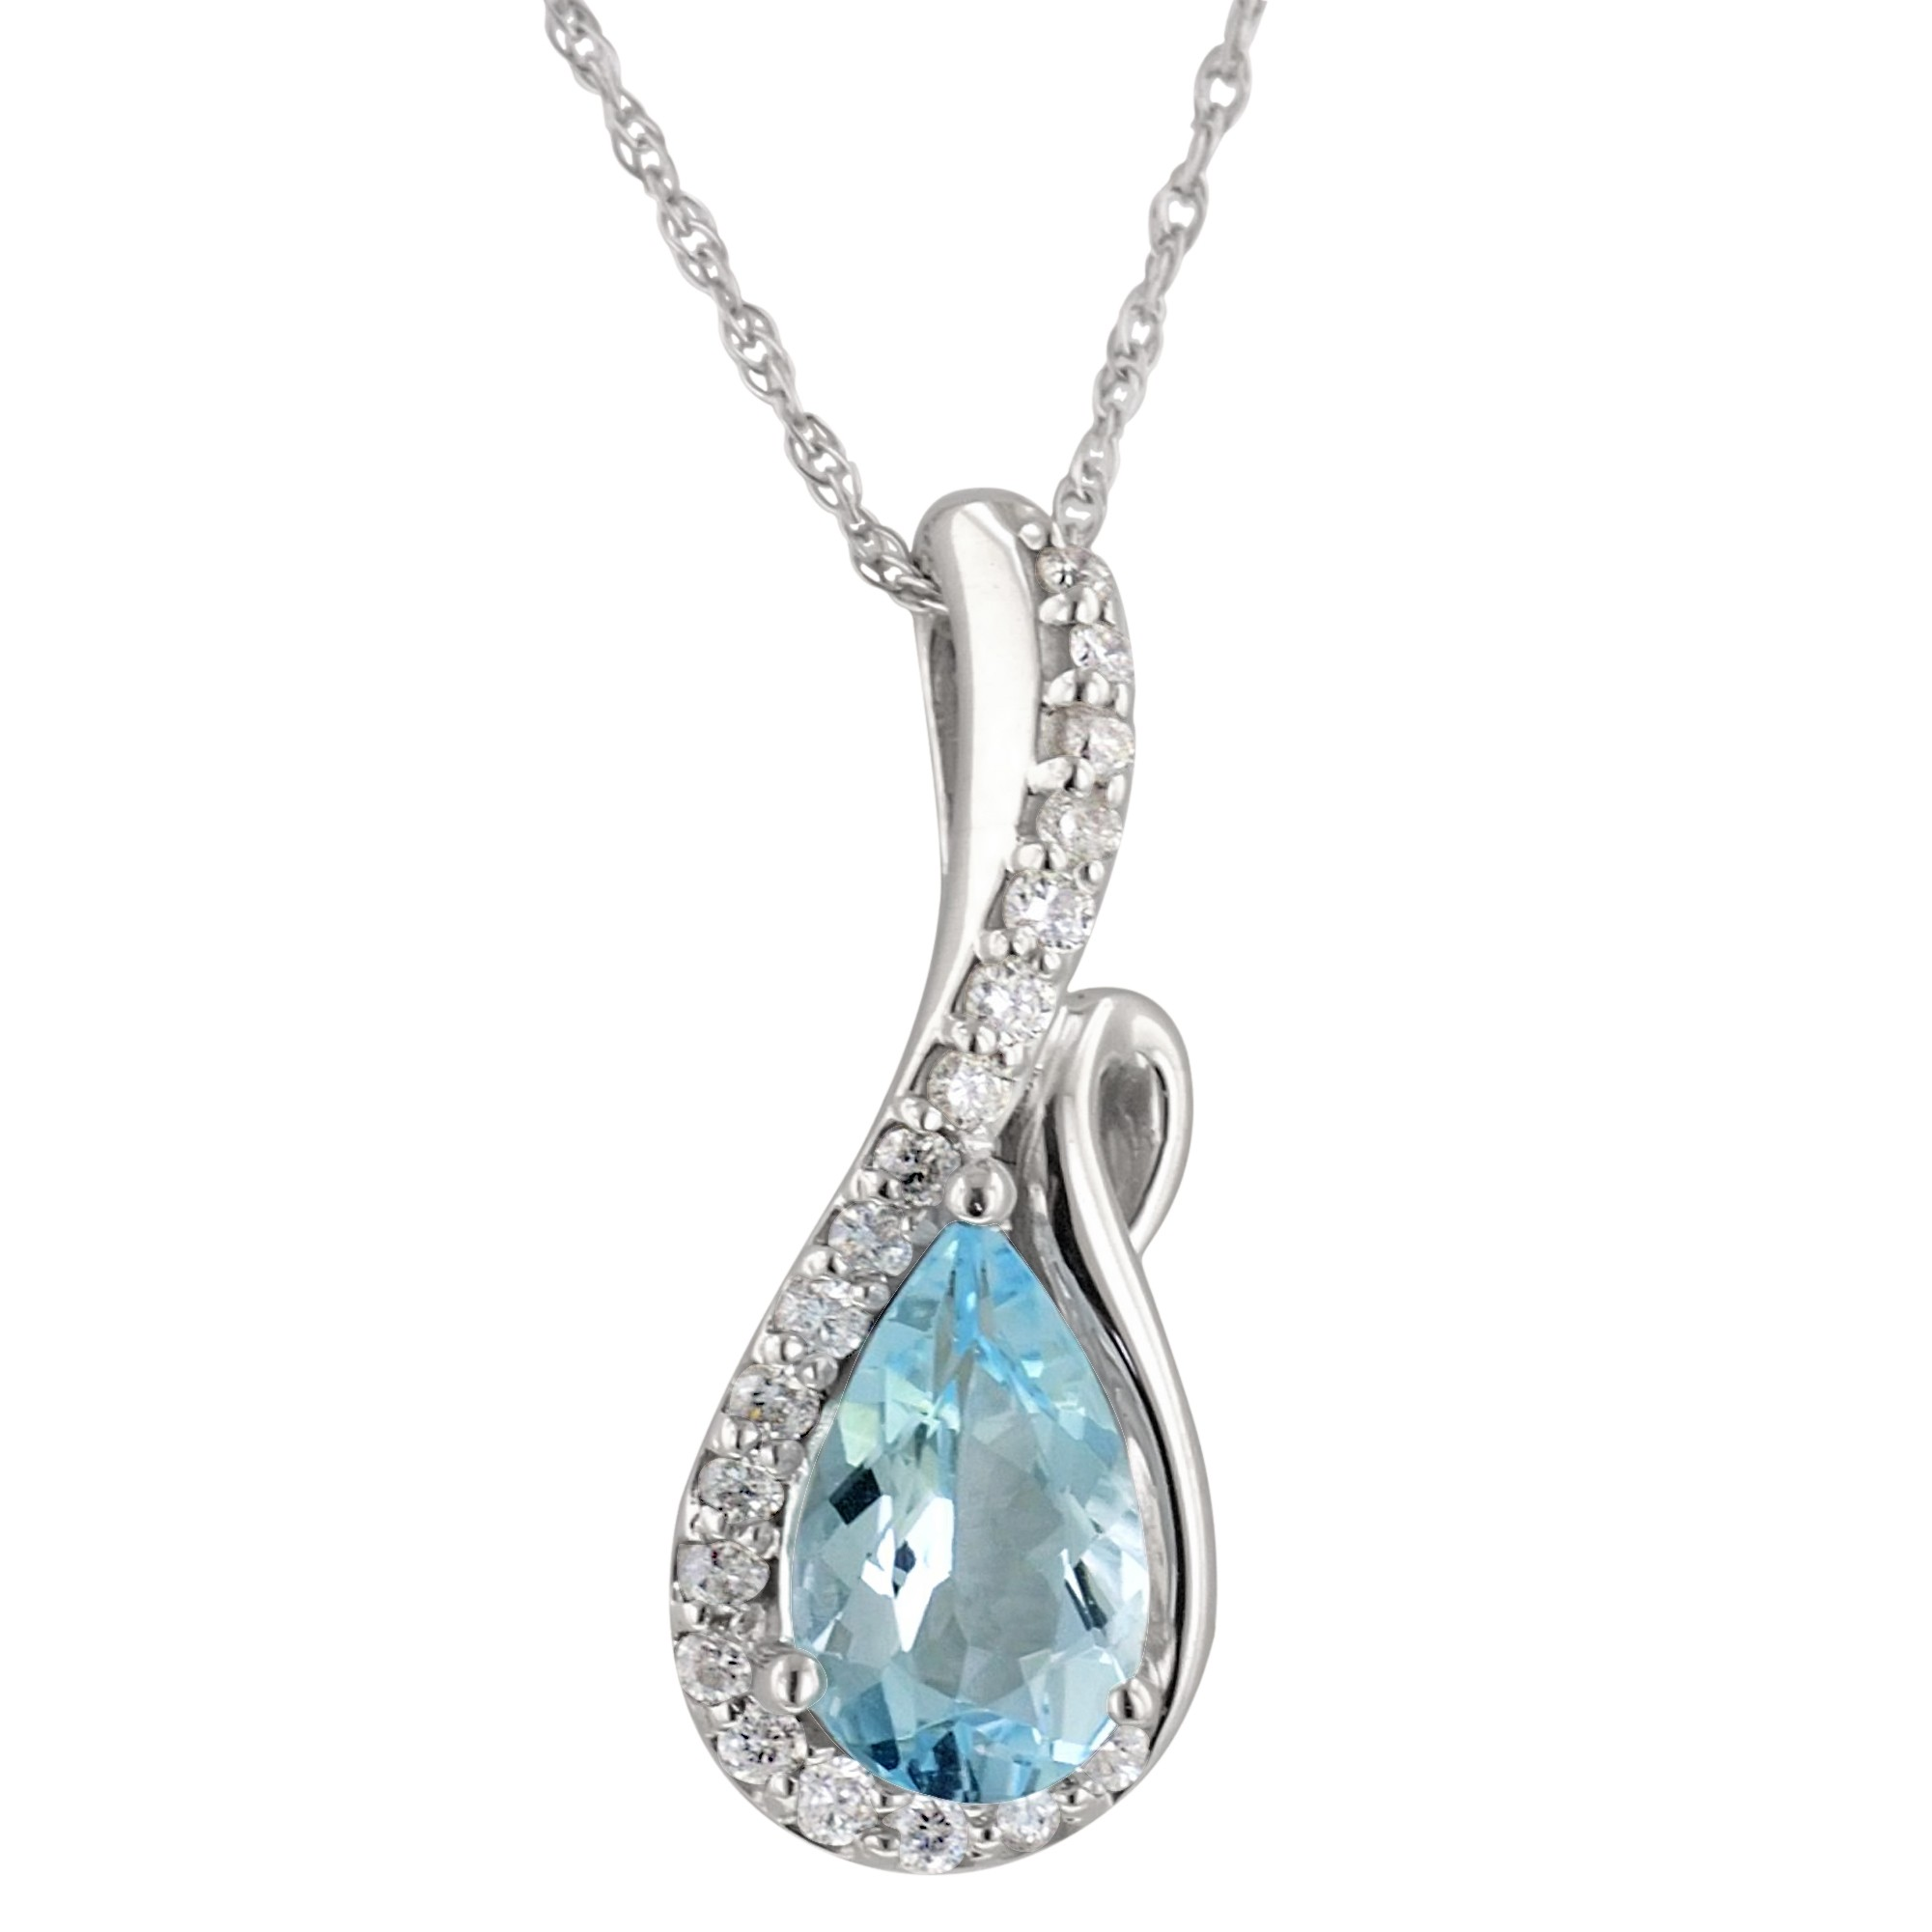 free product watches today overstock necklace jewelry shipping sterling aquamarine pendant miadora silver